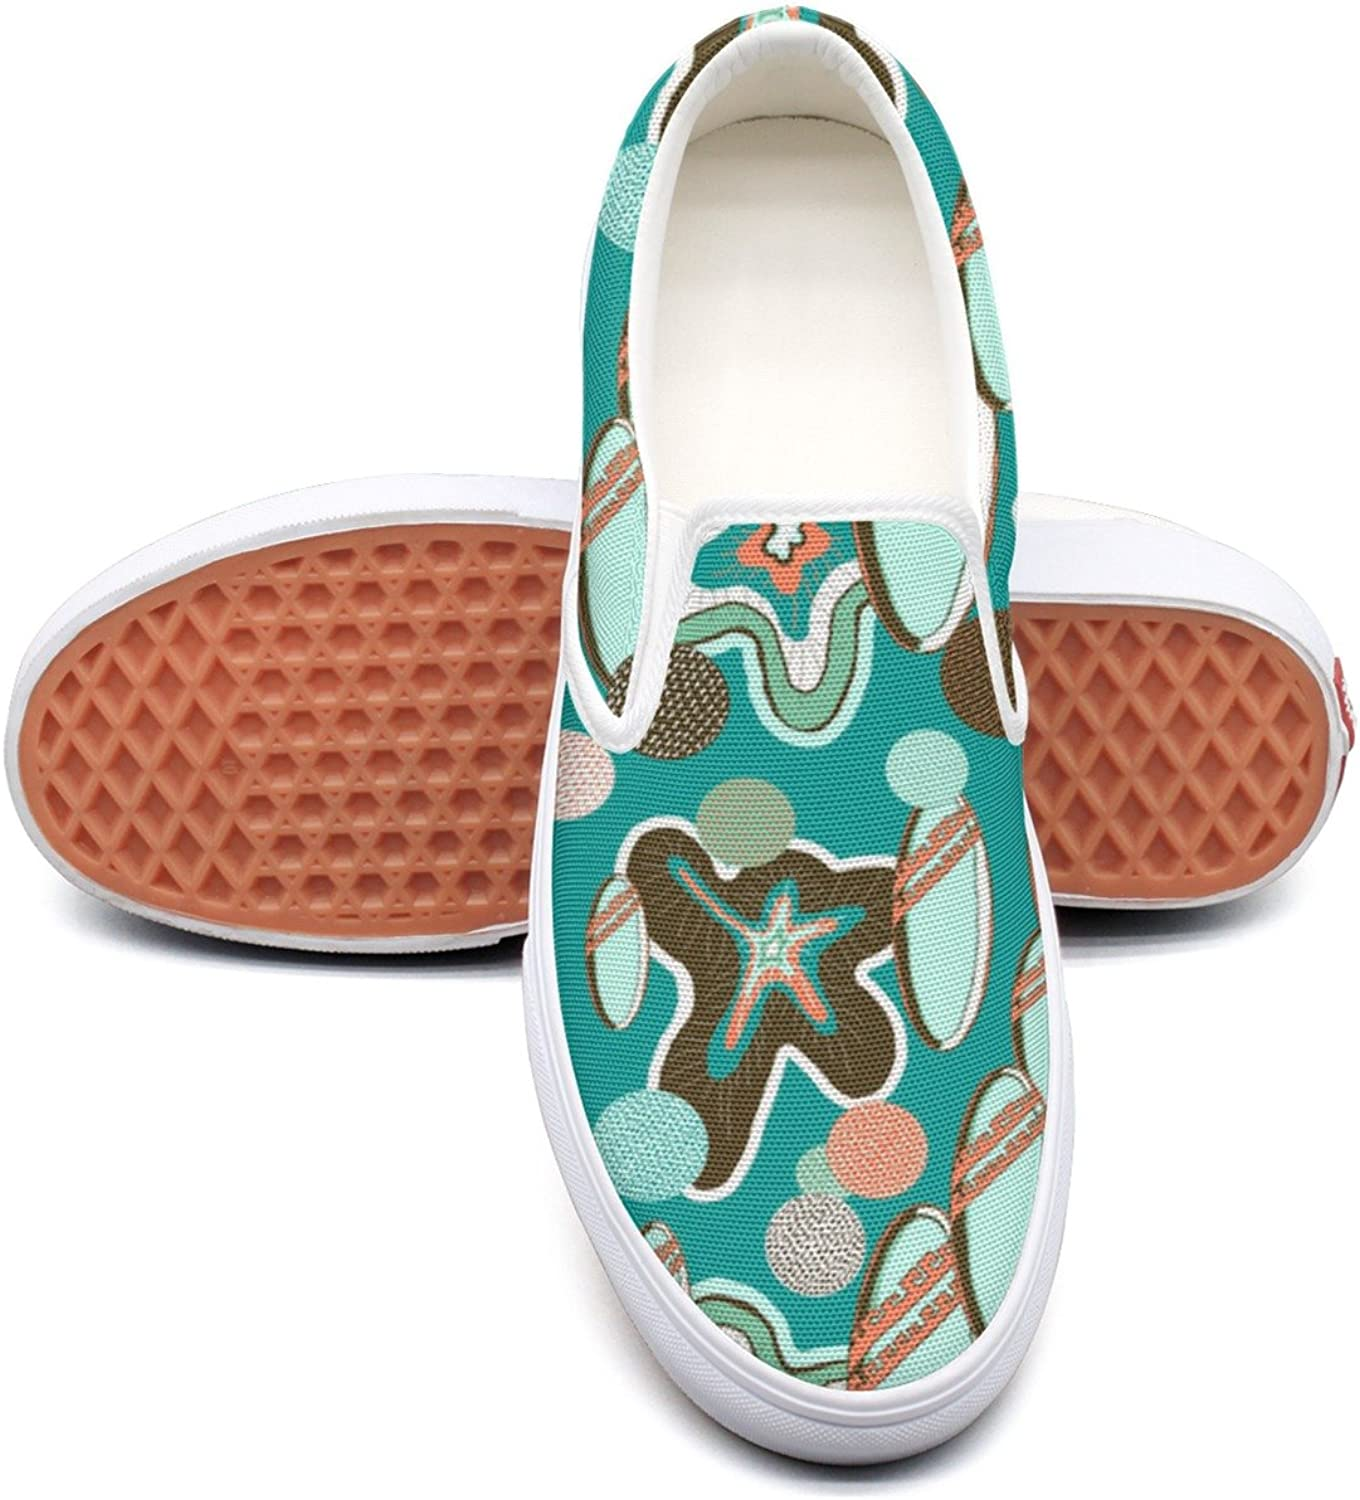 SEERTED Summer Beach Surfboard Comfortable Sneakers for Standing All Day